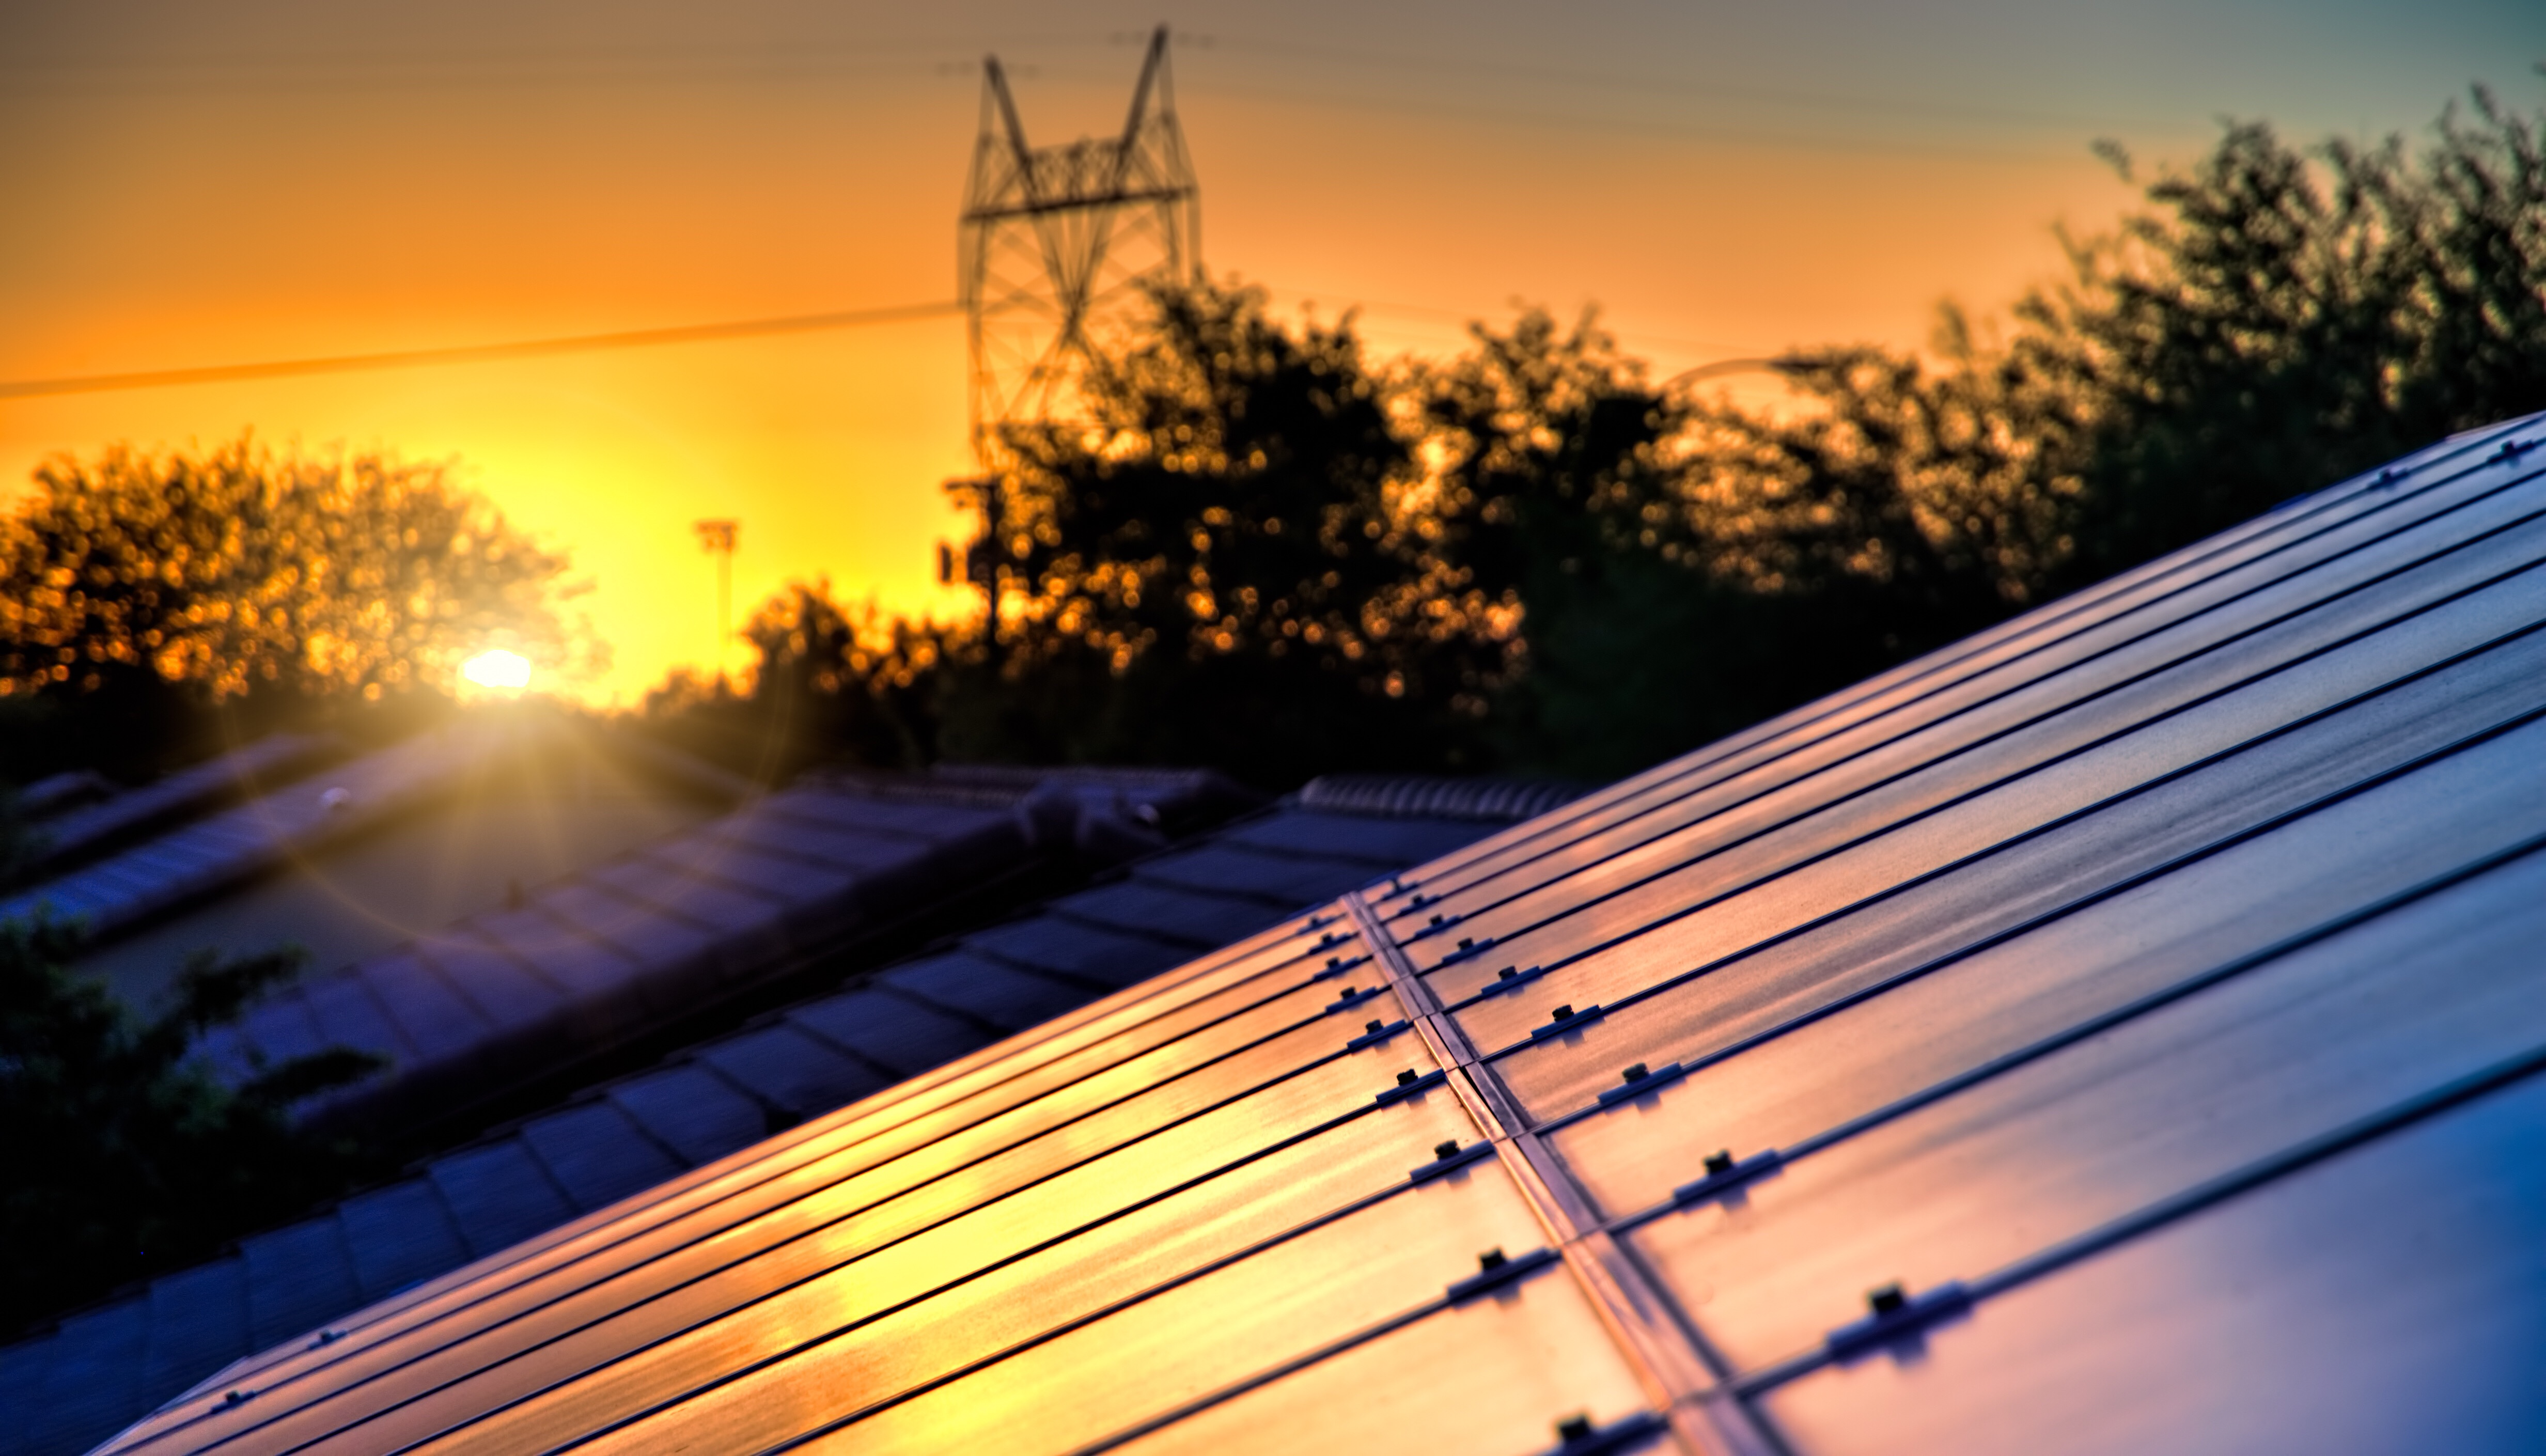 When the sun goes down use solar batteries instead